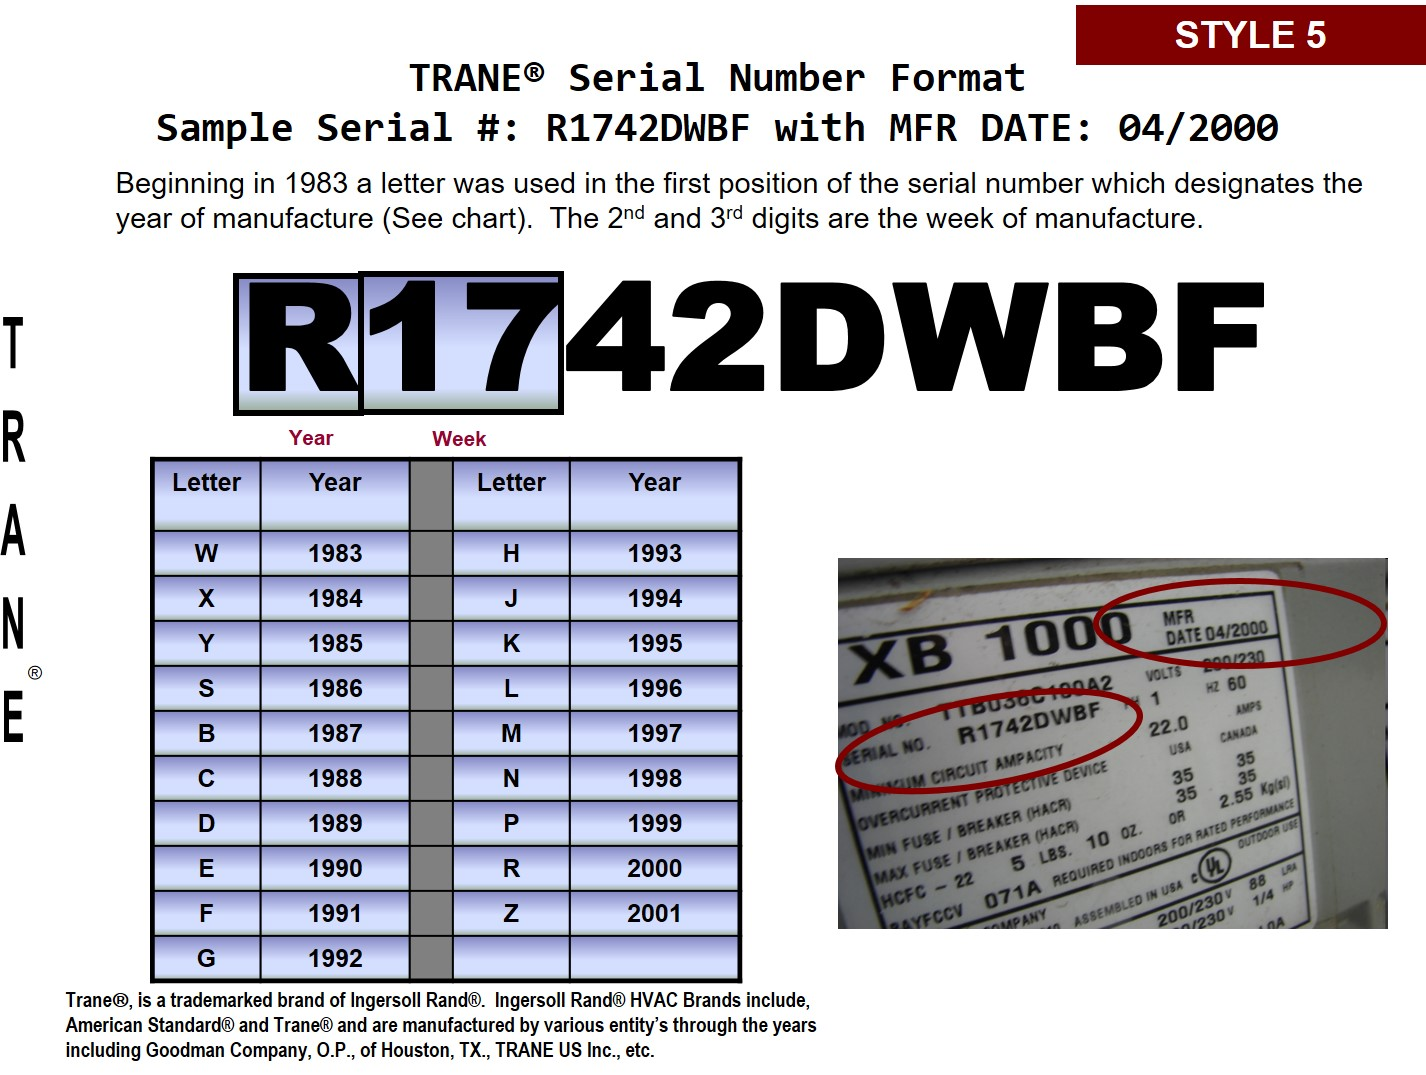 xr 1200 service manual ebook Hfca Wiring Diagram Trane Model on